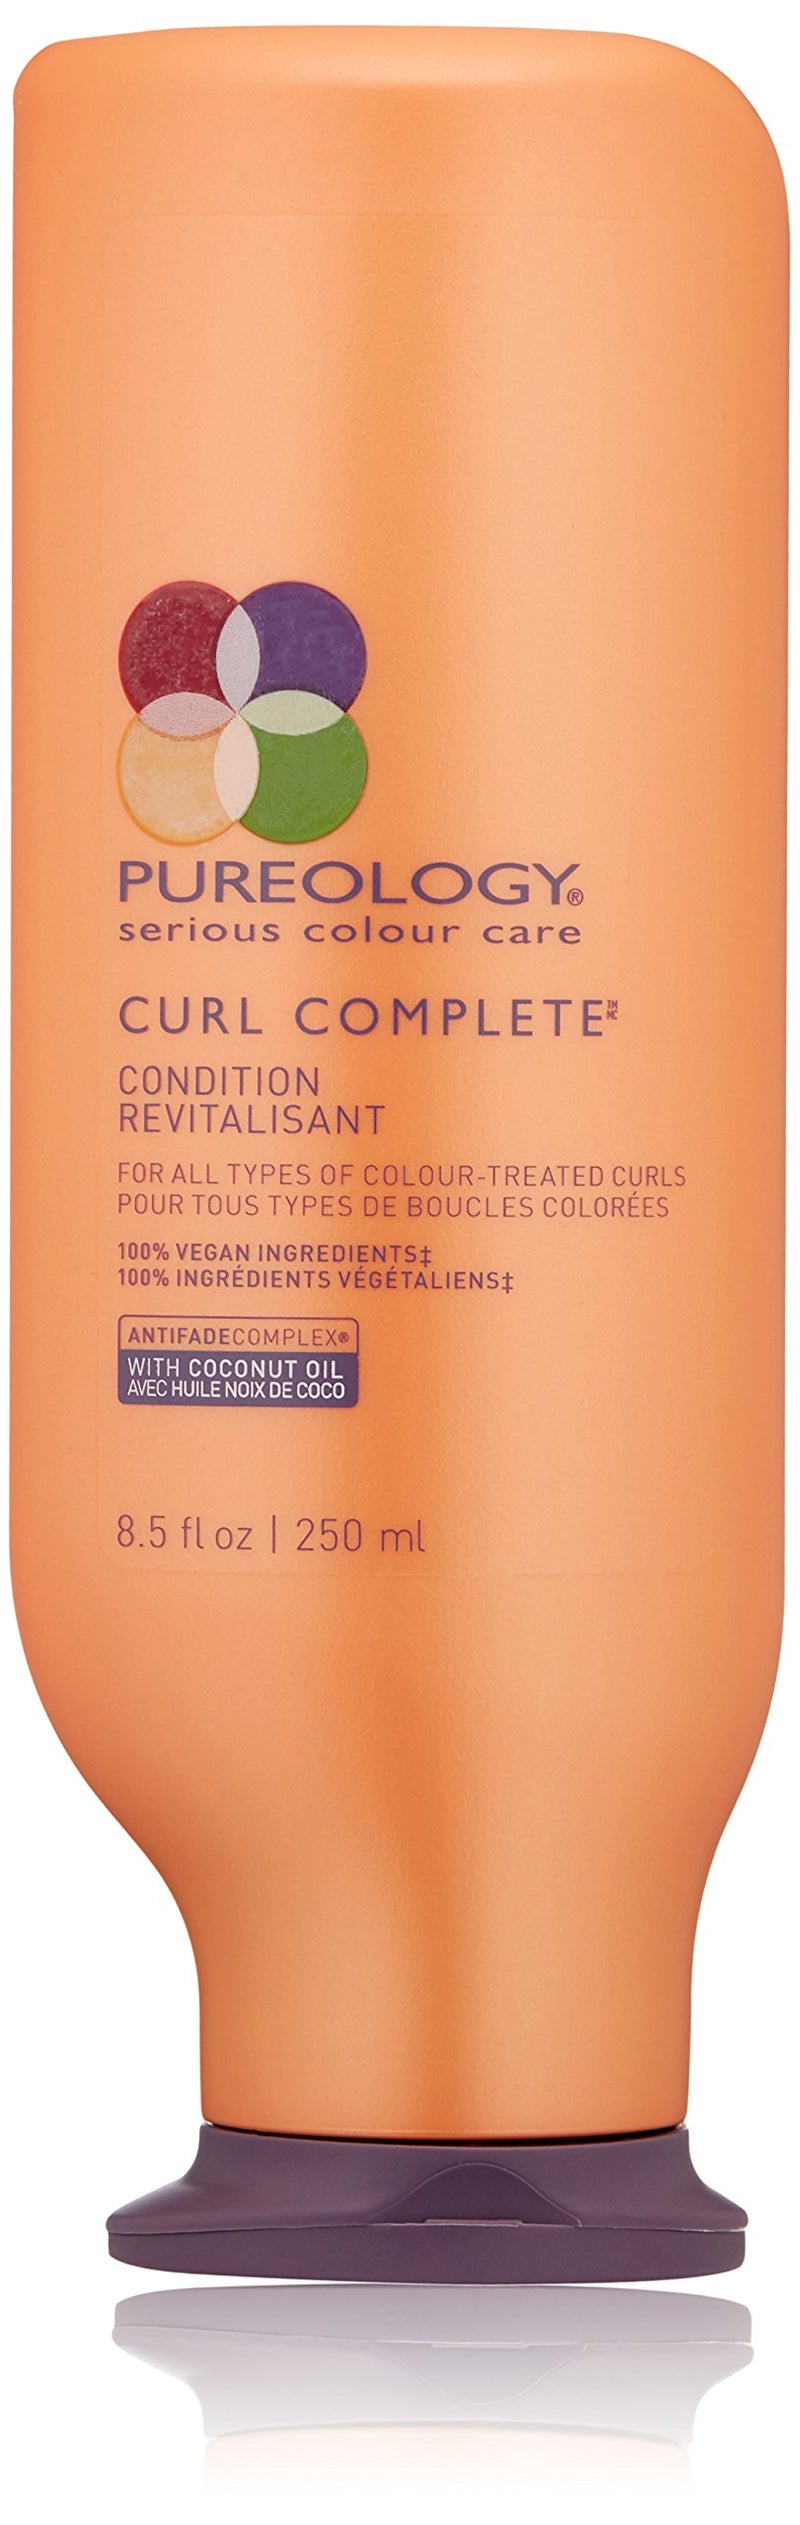 Pureology Curl Complete Condition, 8.5 oz.